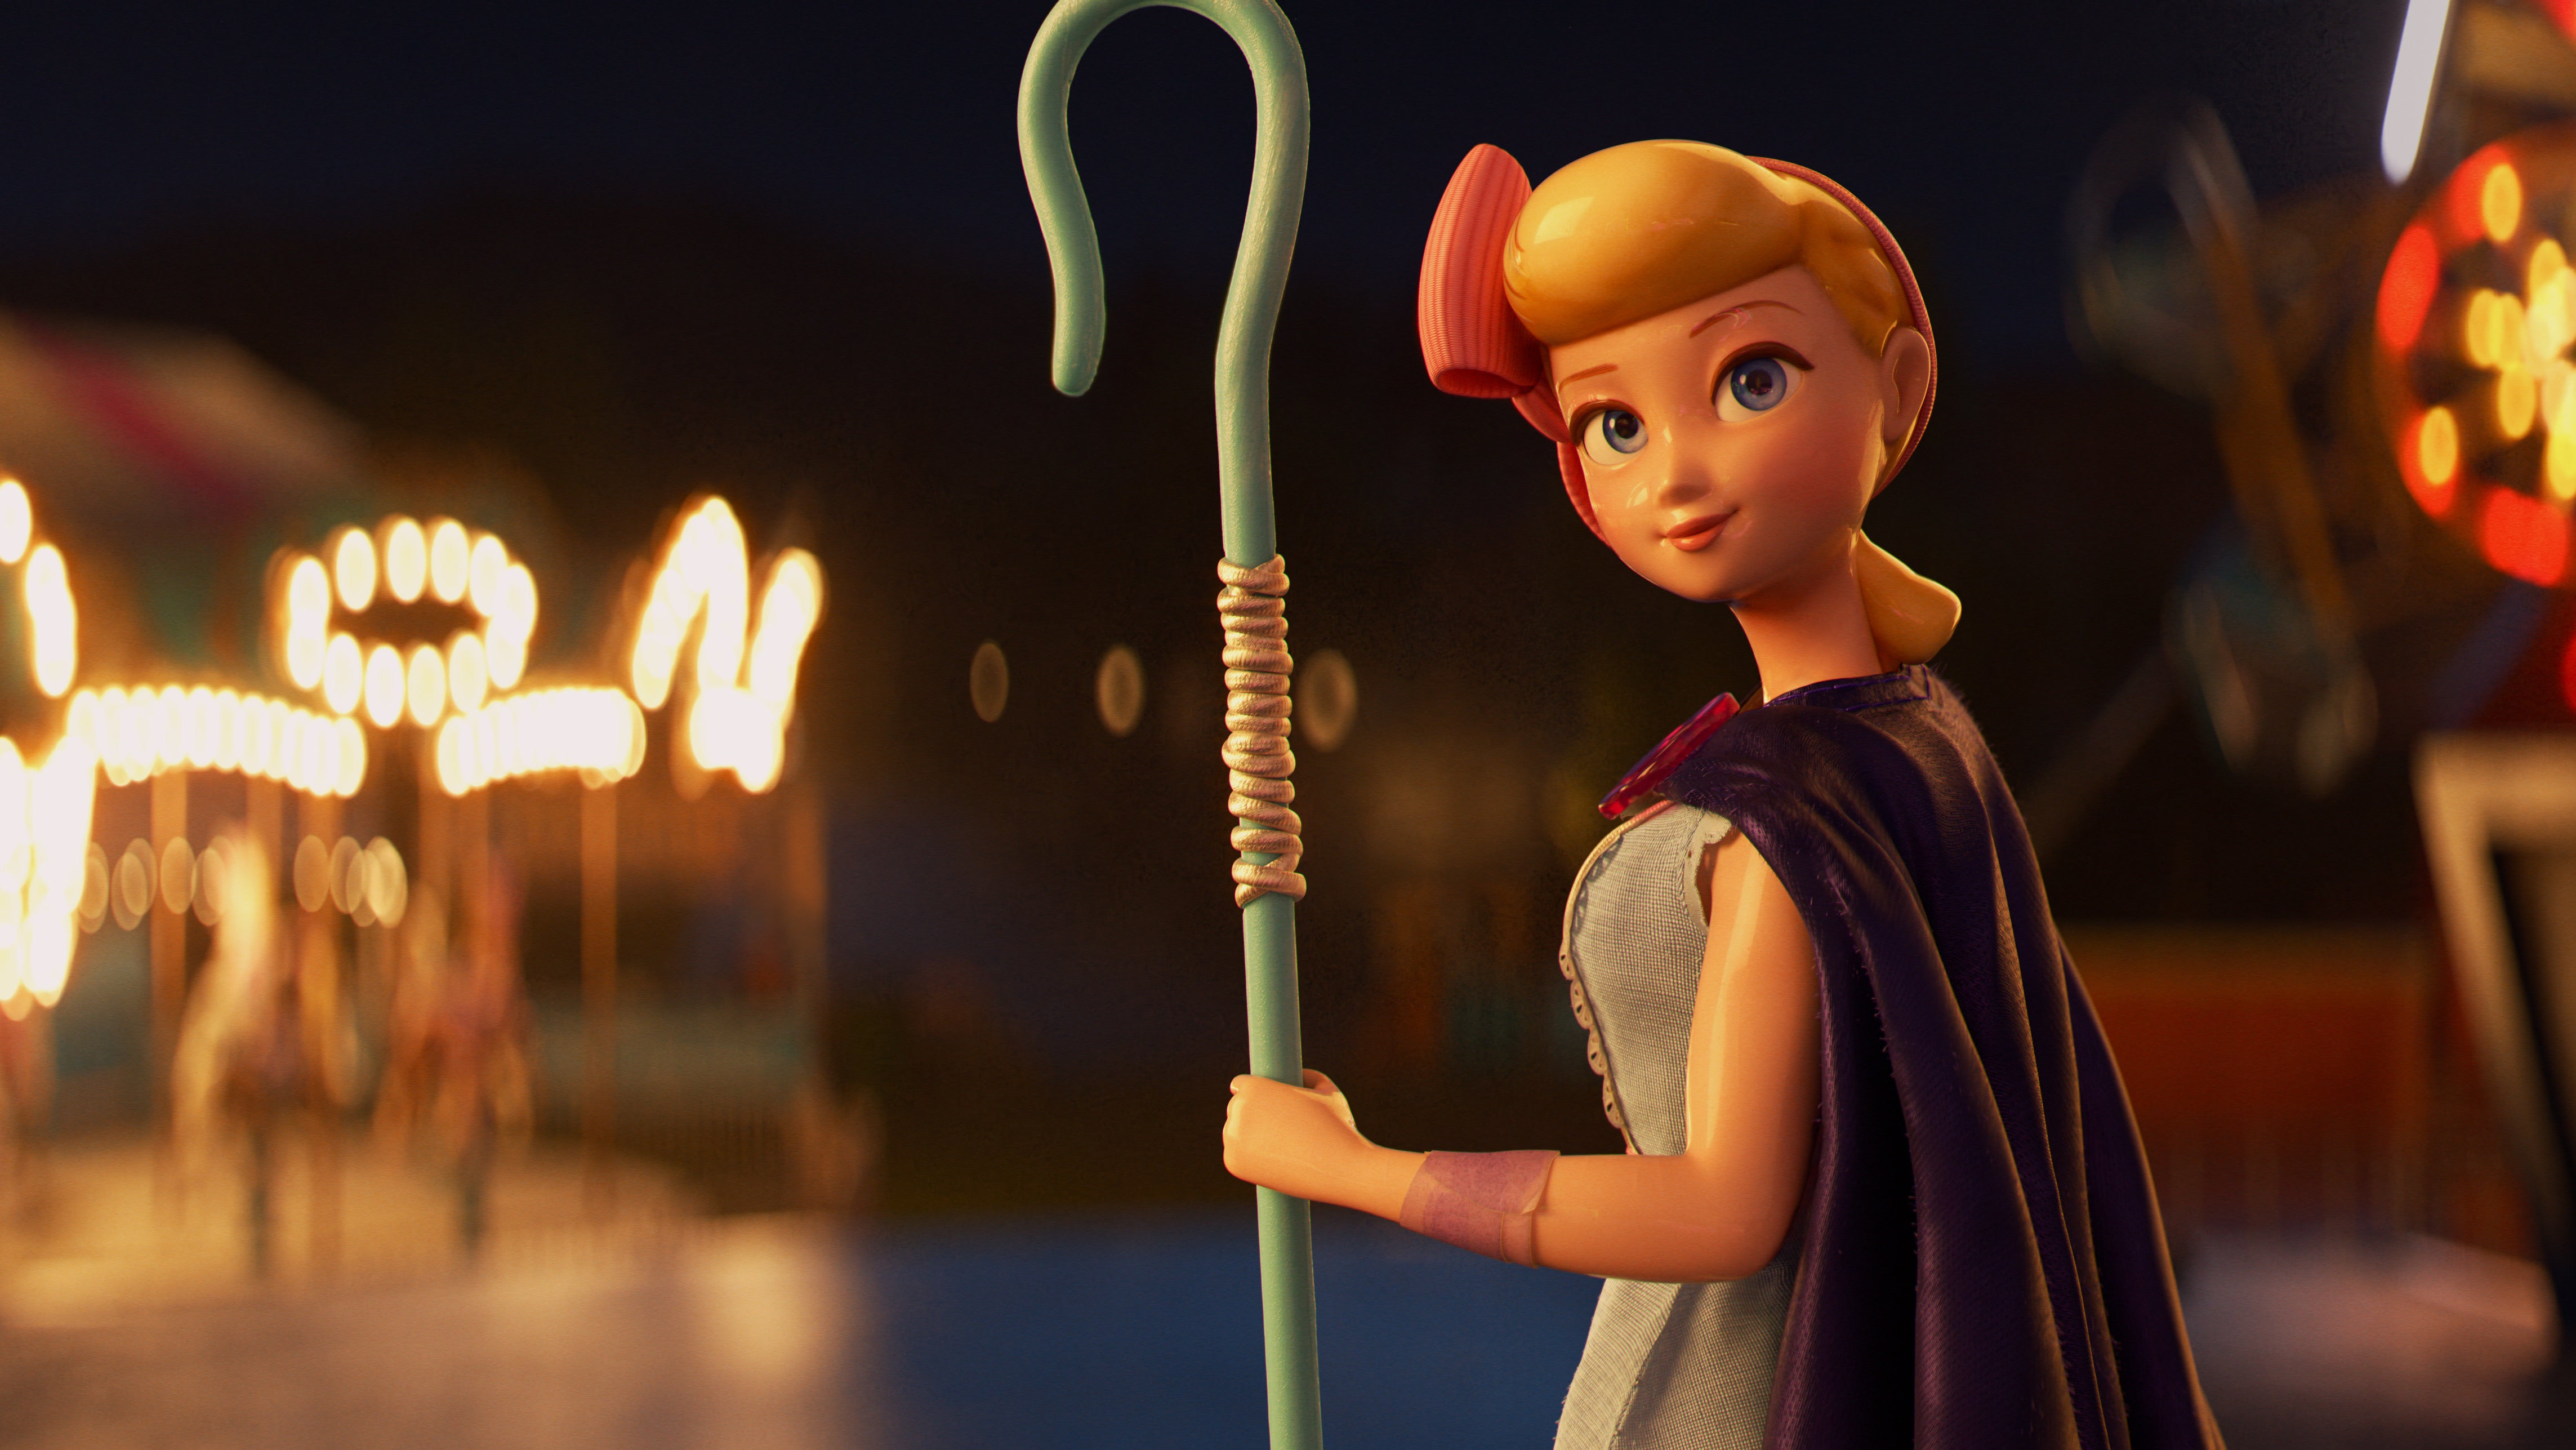 This Toy Story 4 Alternate Ending Would Have Screwed Over Bo Peep